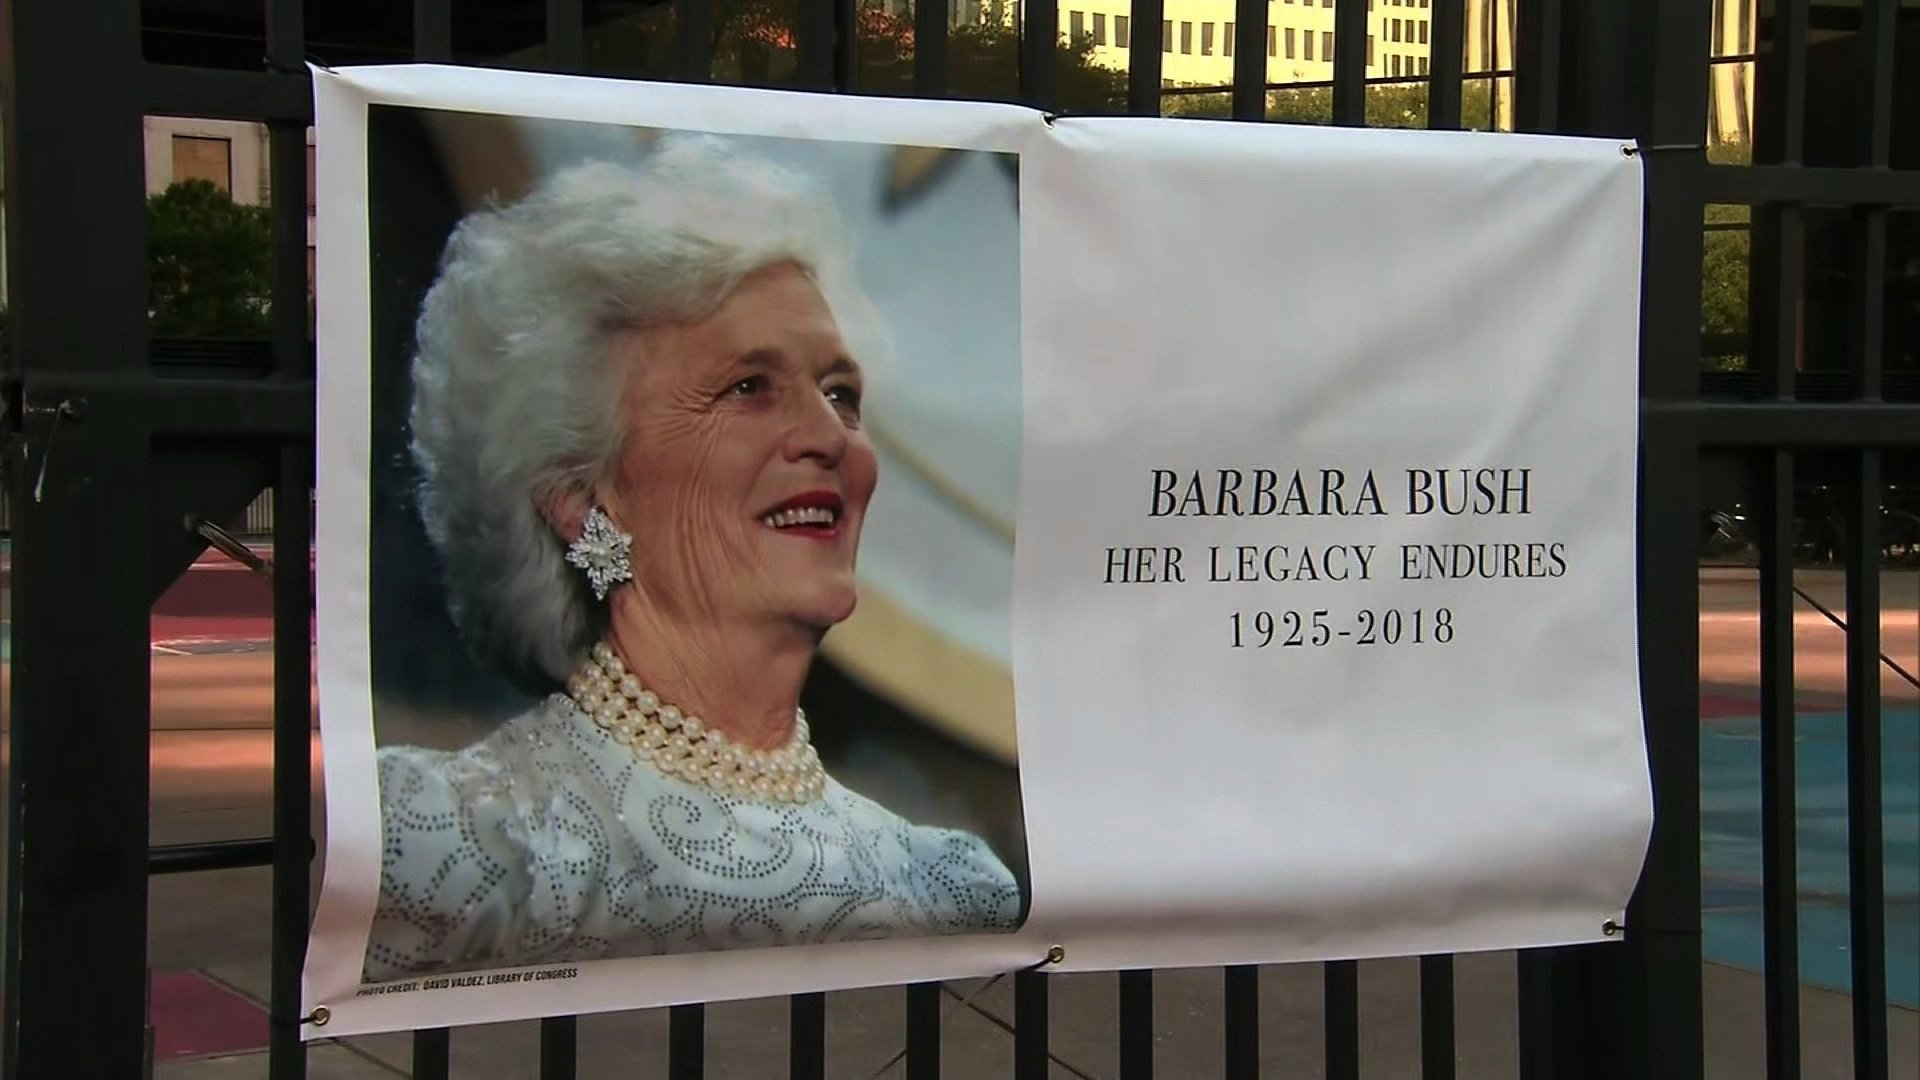 Former first lady Barbara Bush laid to rest